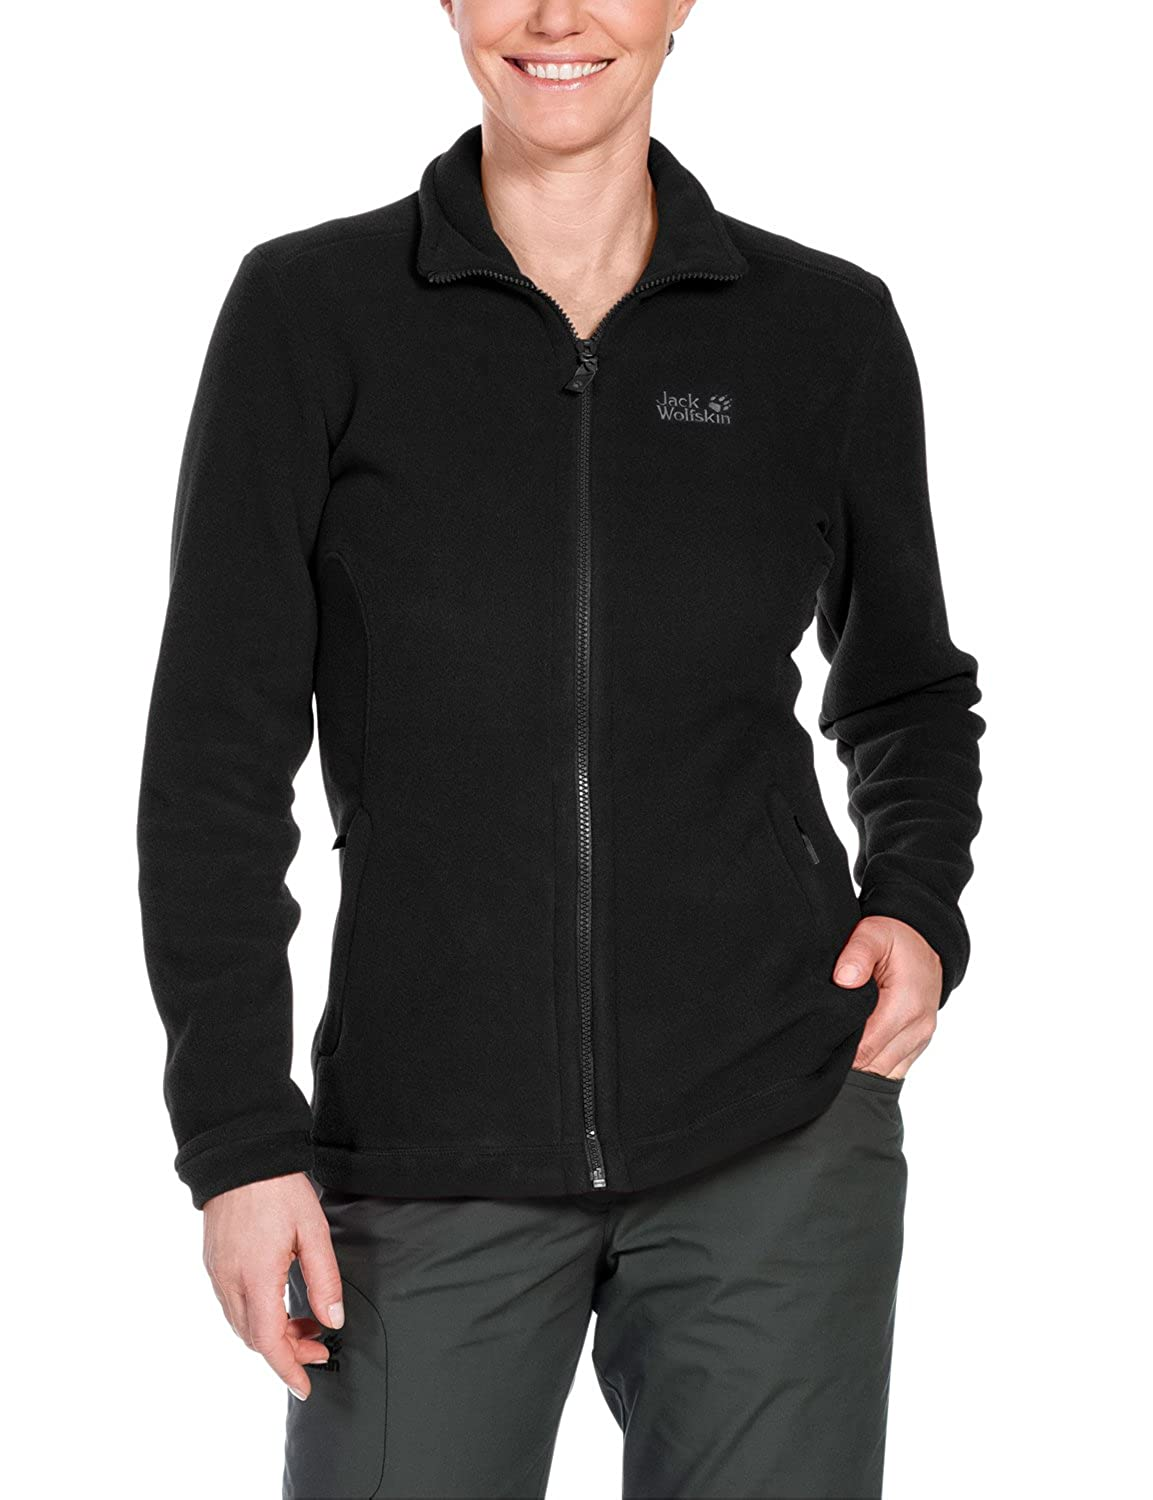 Jack Wolfskin Damen Fleece Jacke Midnight Moon